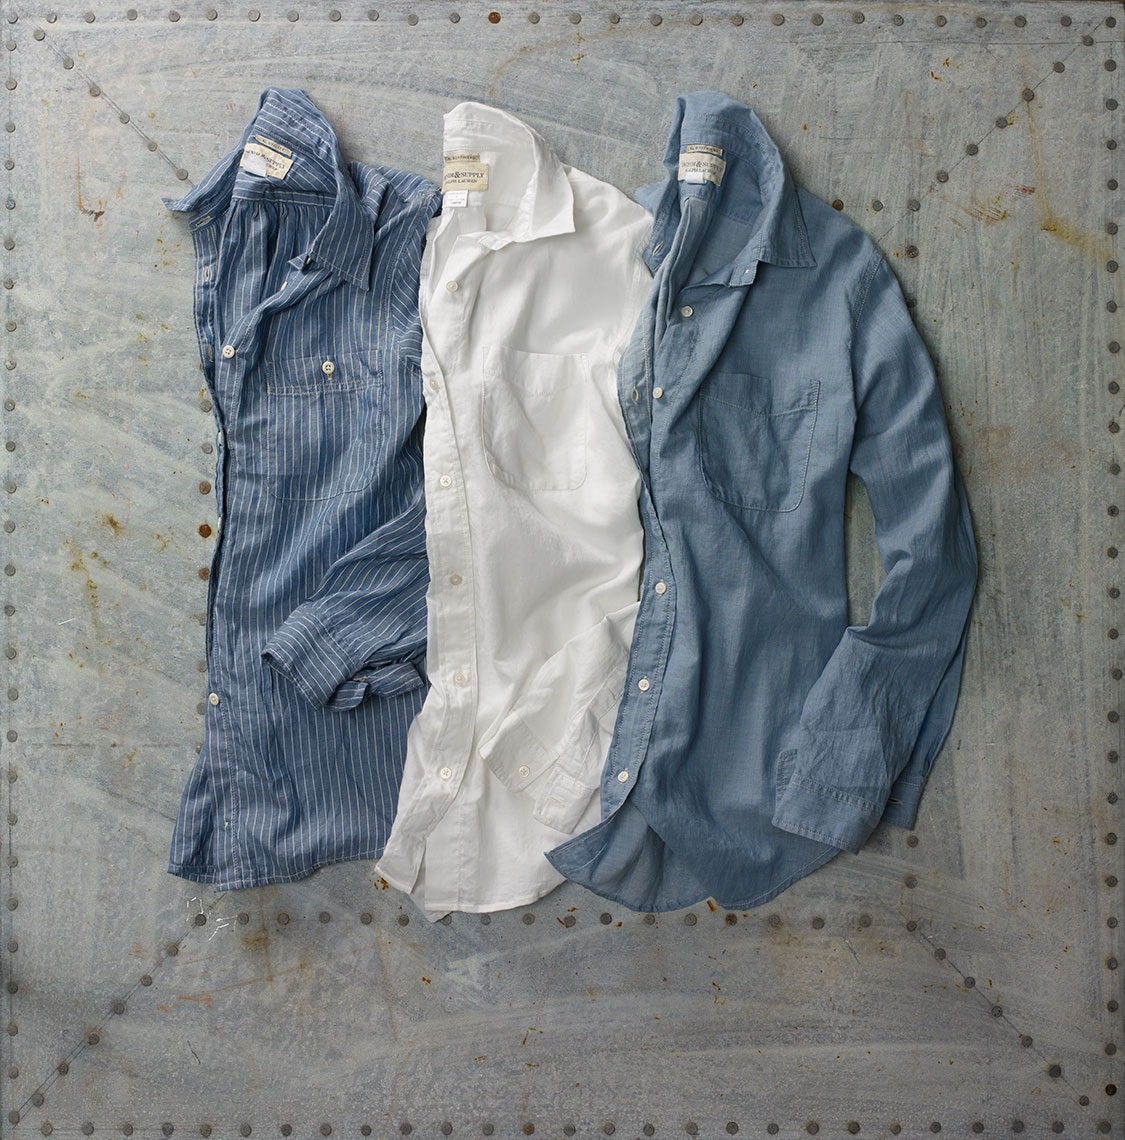 Denim_shirts3